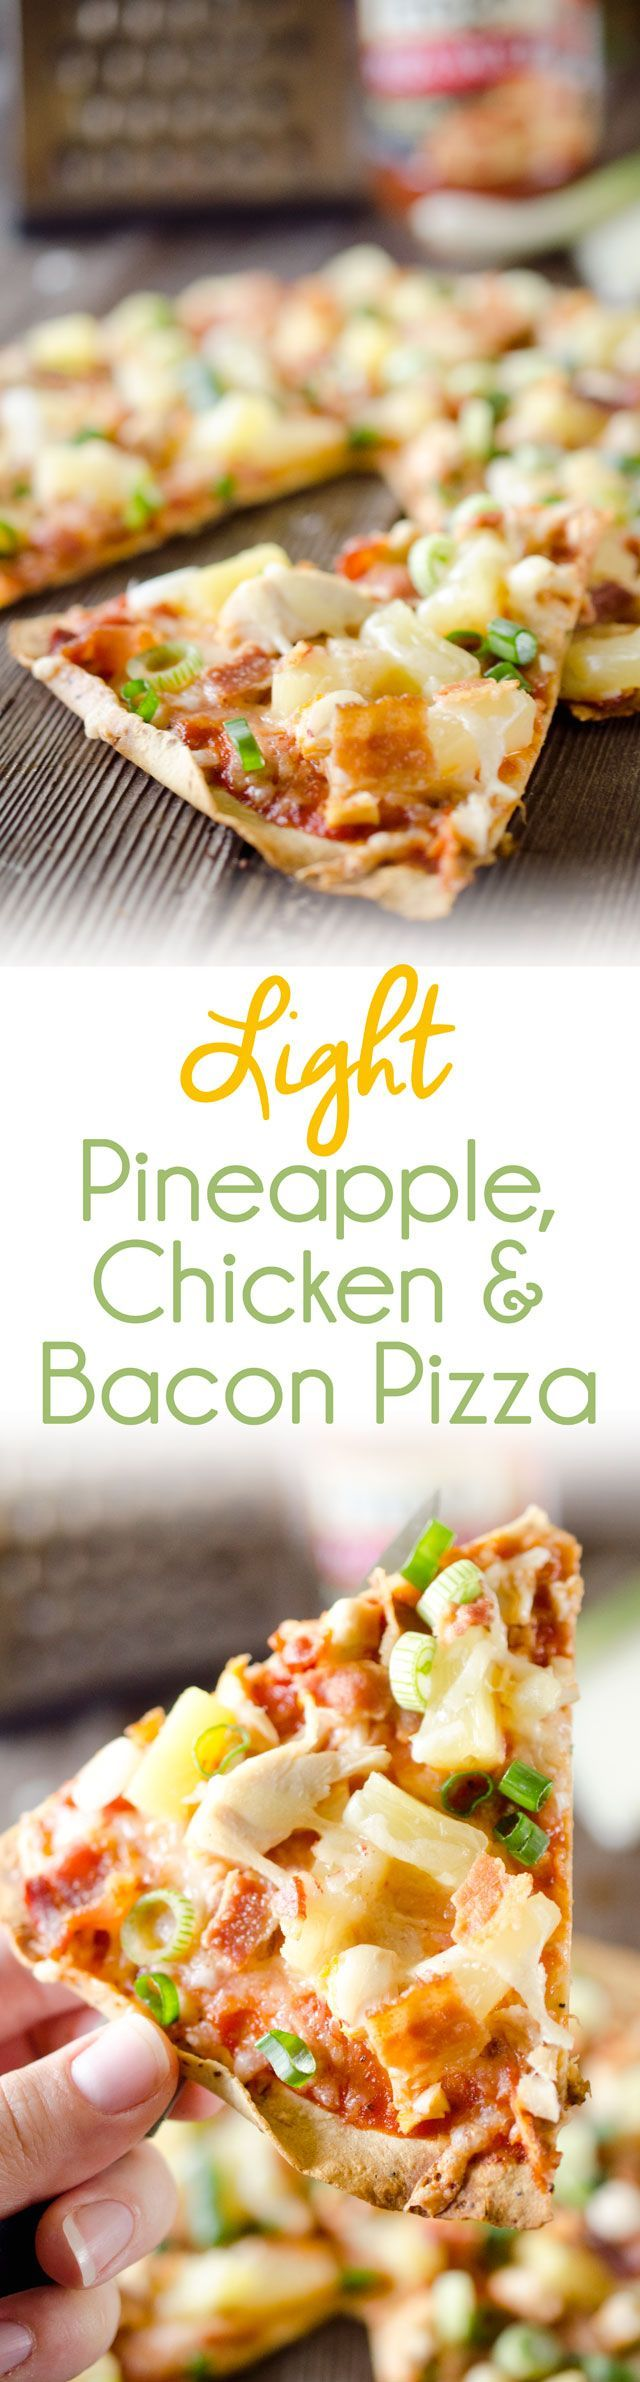 Light Pineapple, Chicken & Bacon Pizza is an easy and healthy dinner for two with juicy pineapple, sharp Manchego cheese and shredded chicken with crisp bacon.